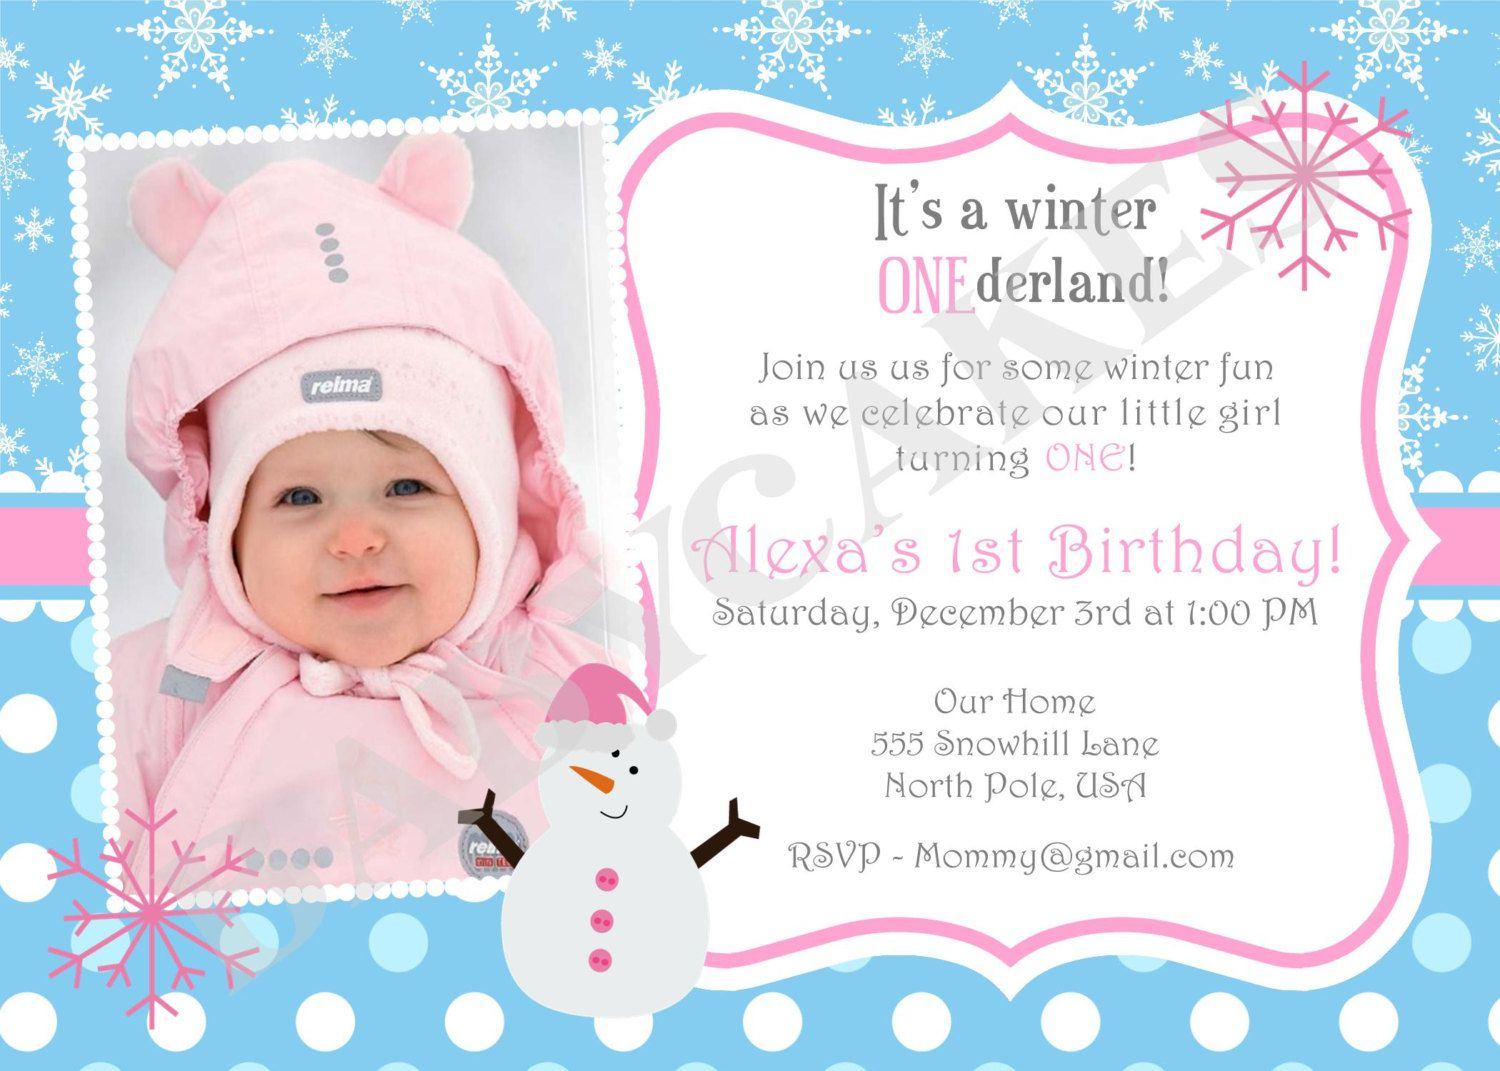 3rd birthday invitation quotes ; 32433a5a39d30ae29126ce8547c22125